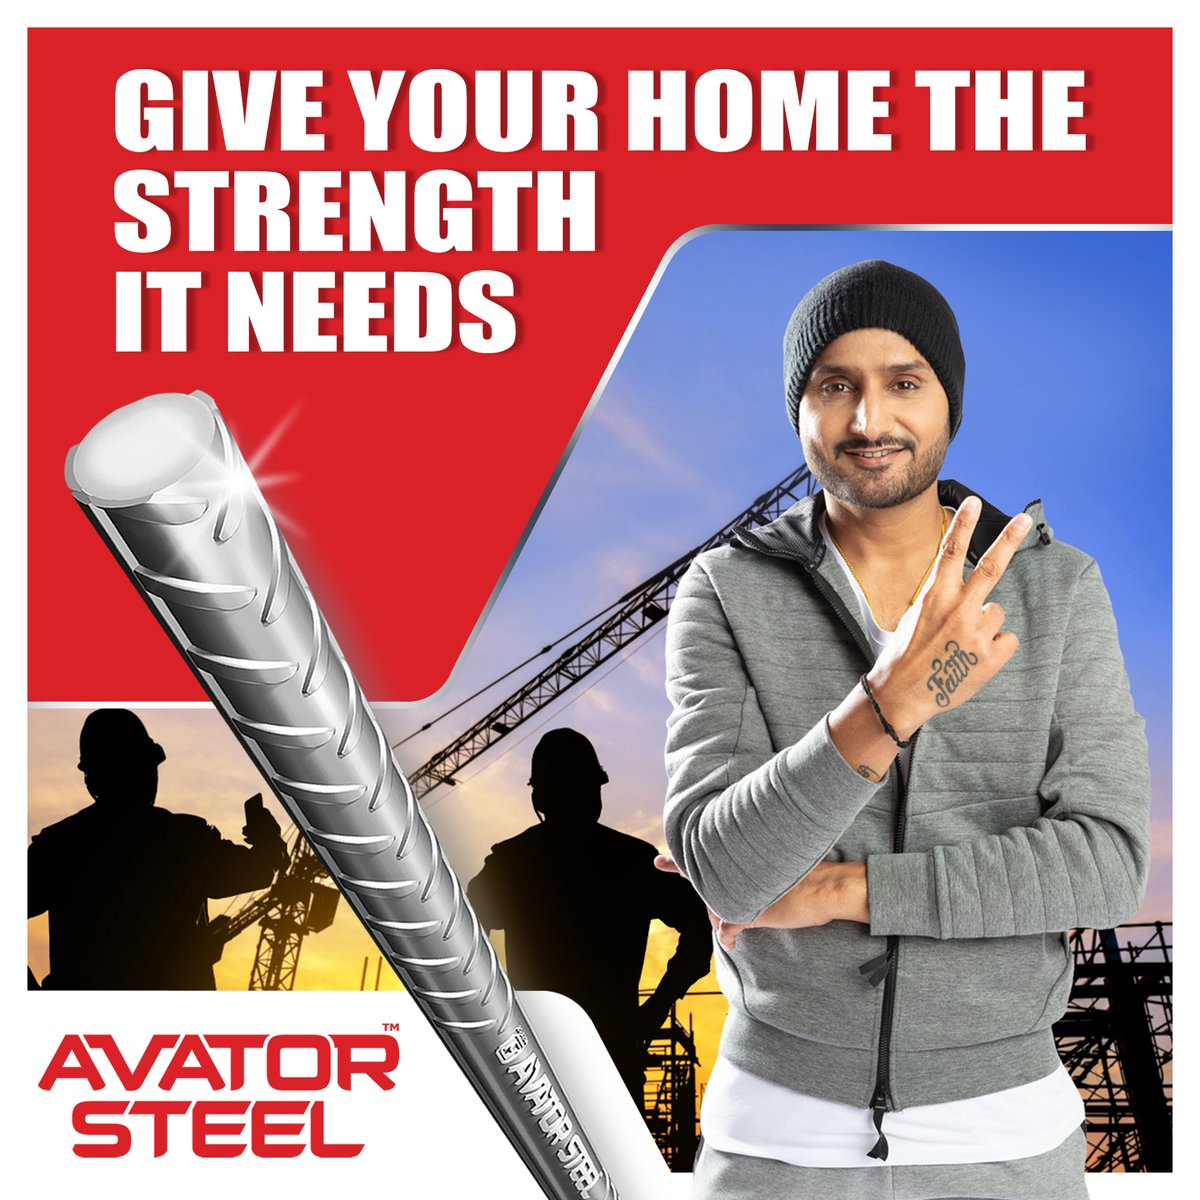 To give your home the required strength to last for many generations, place your faith in the best TMT bars in the market.   #AvatorSteel #harbhajansingh  @harbhajan_singh